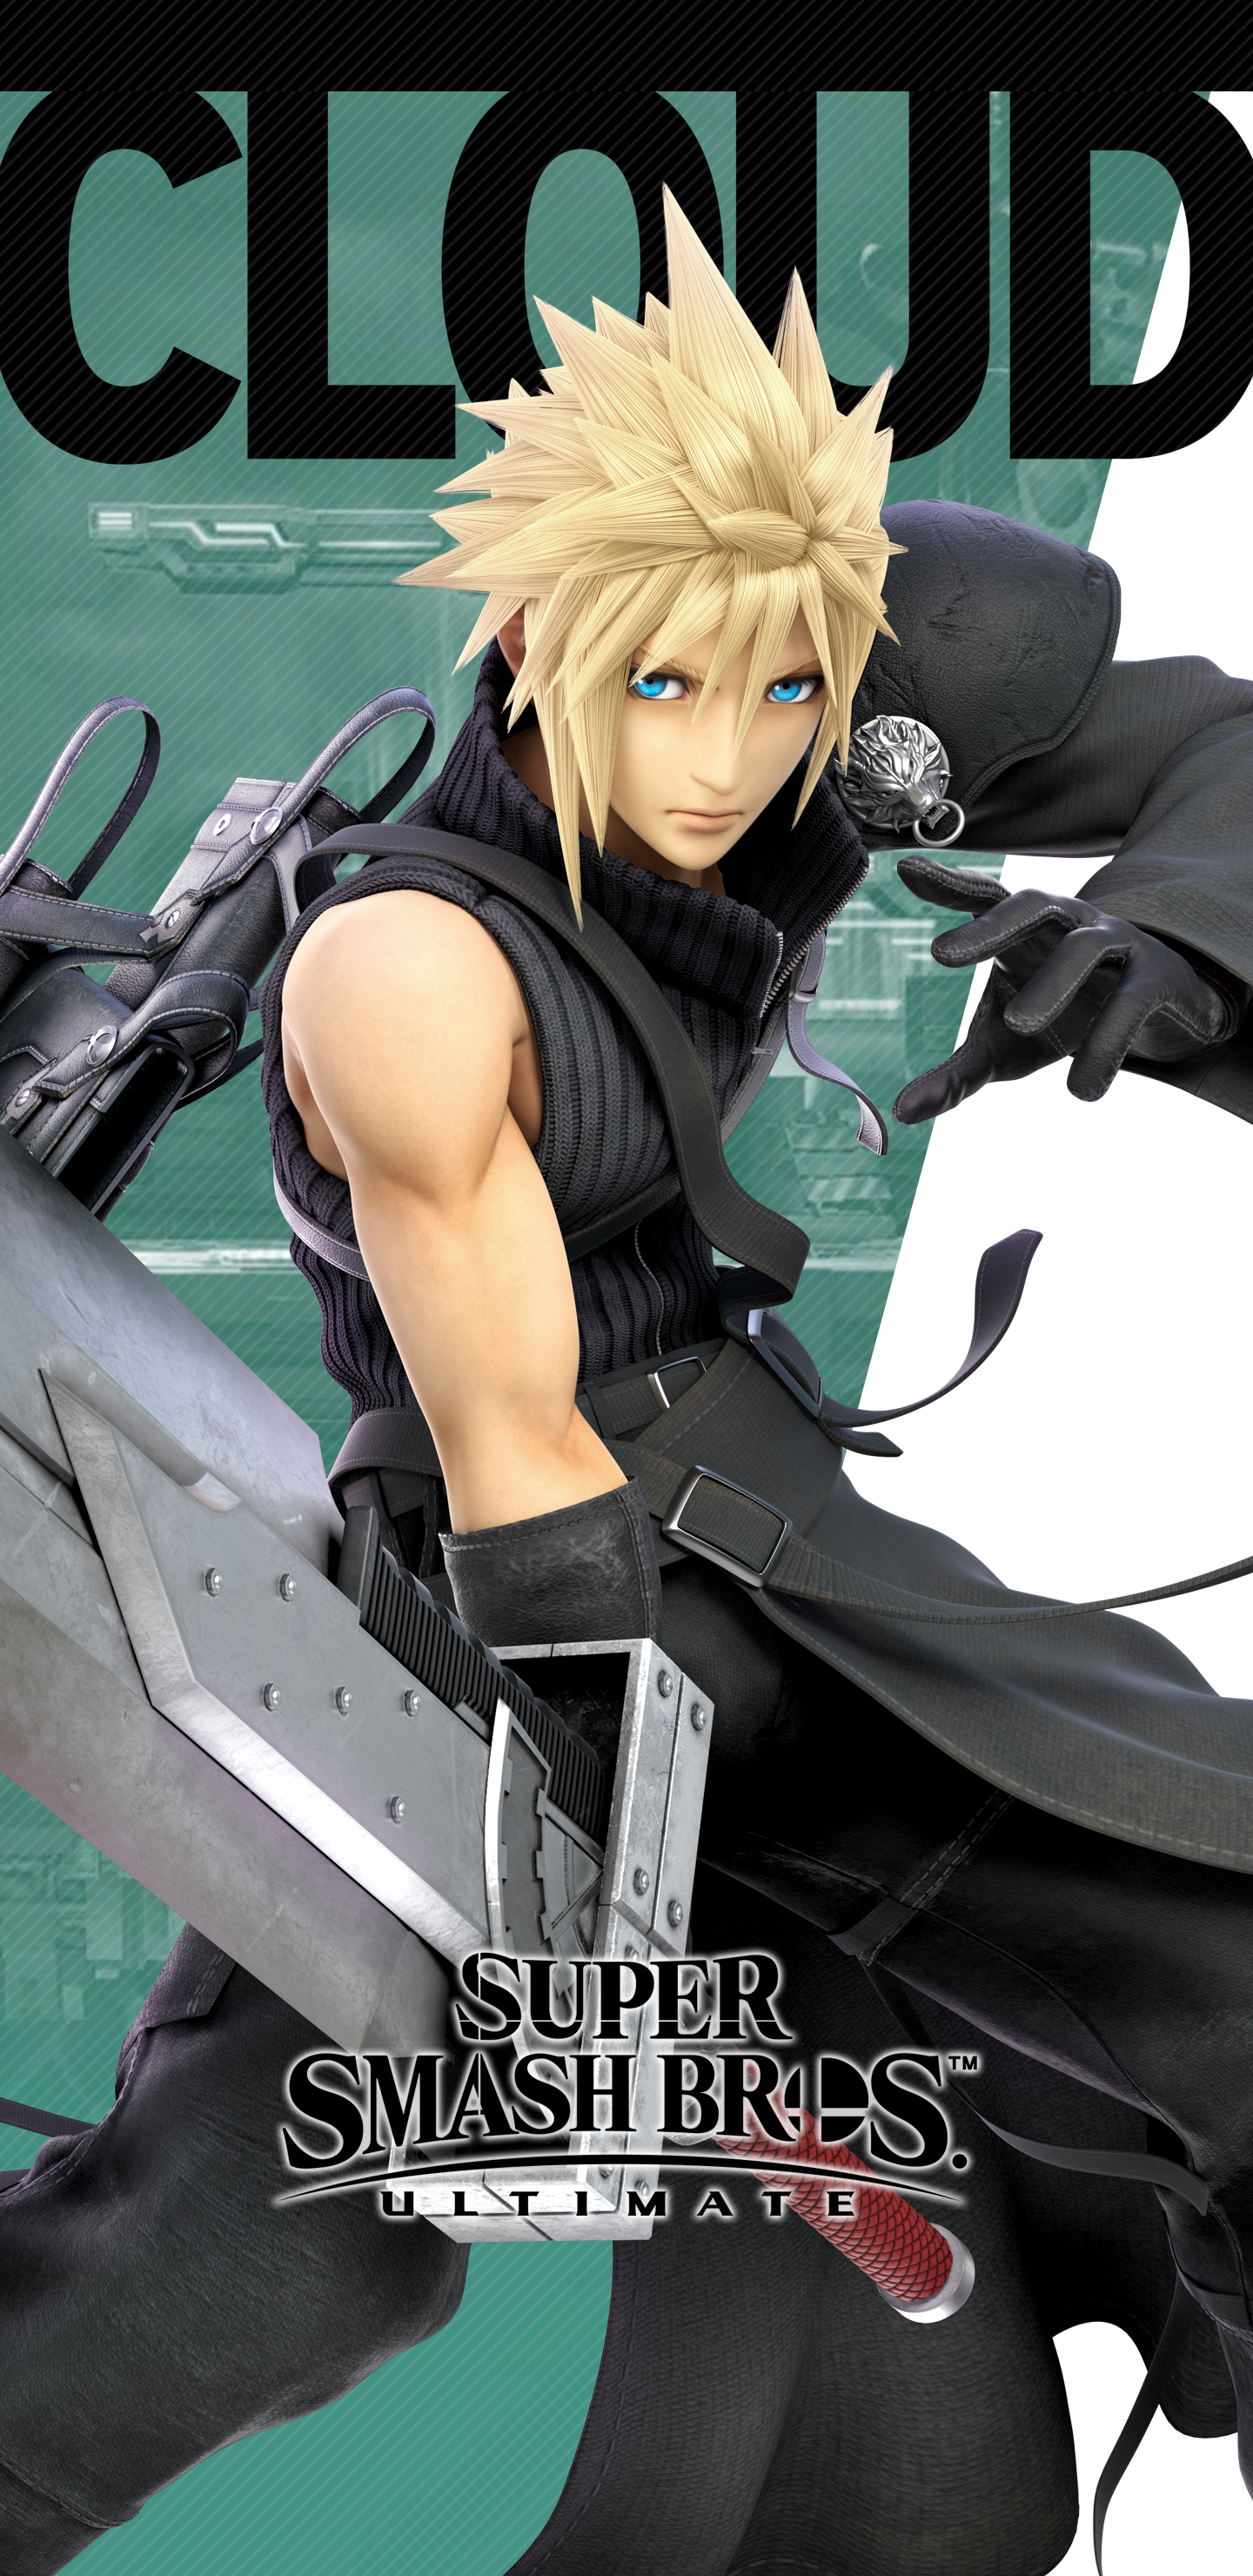 Super Smash Bros Ultimate Advent Children Cloud Wallpapers Cat With Monocle